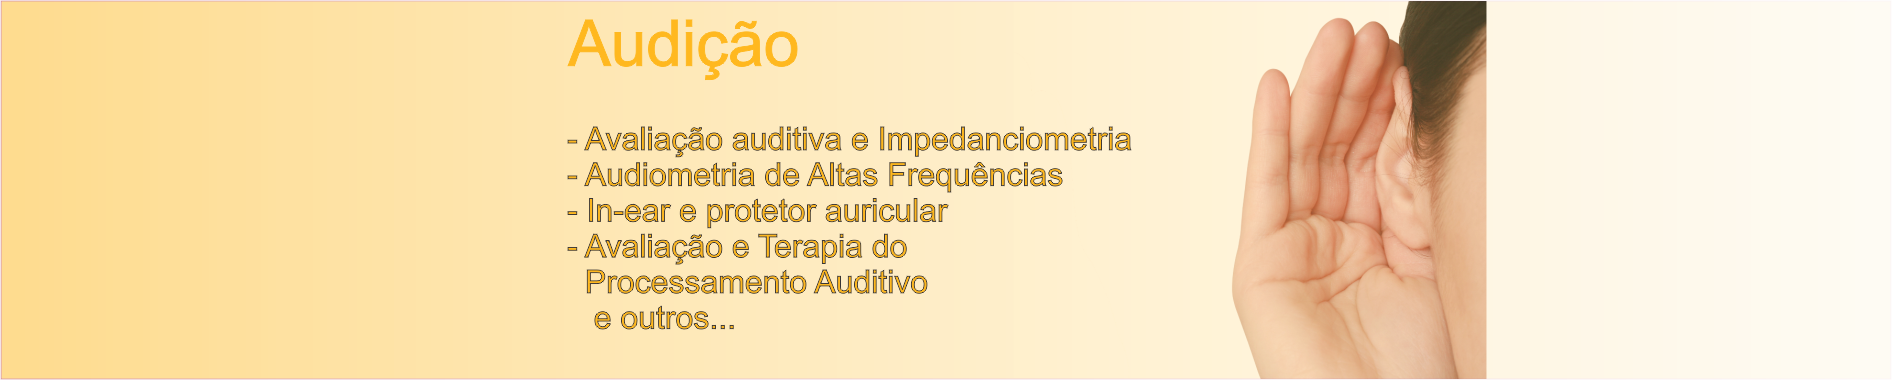 Fonoaudiologa SP Auditivo (banner)